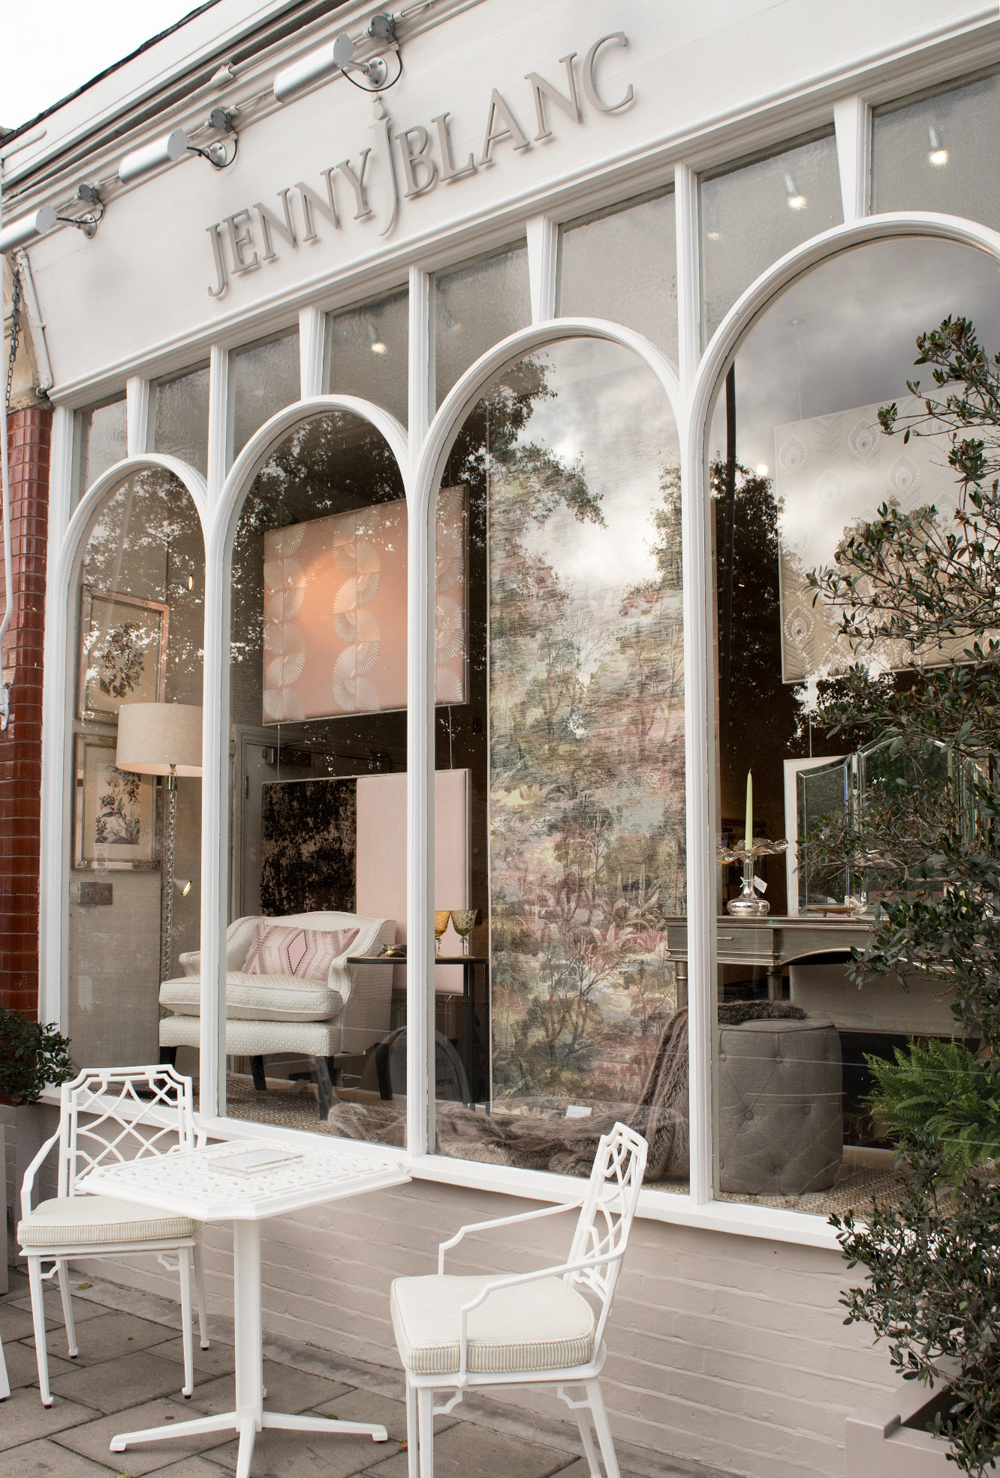 Jenny Blanc London Showroom Window Display